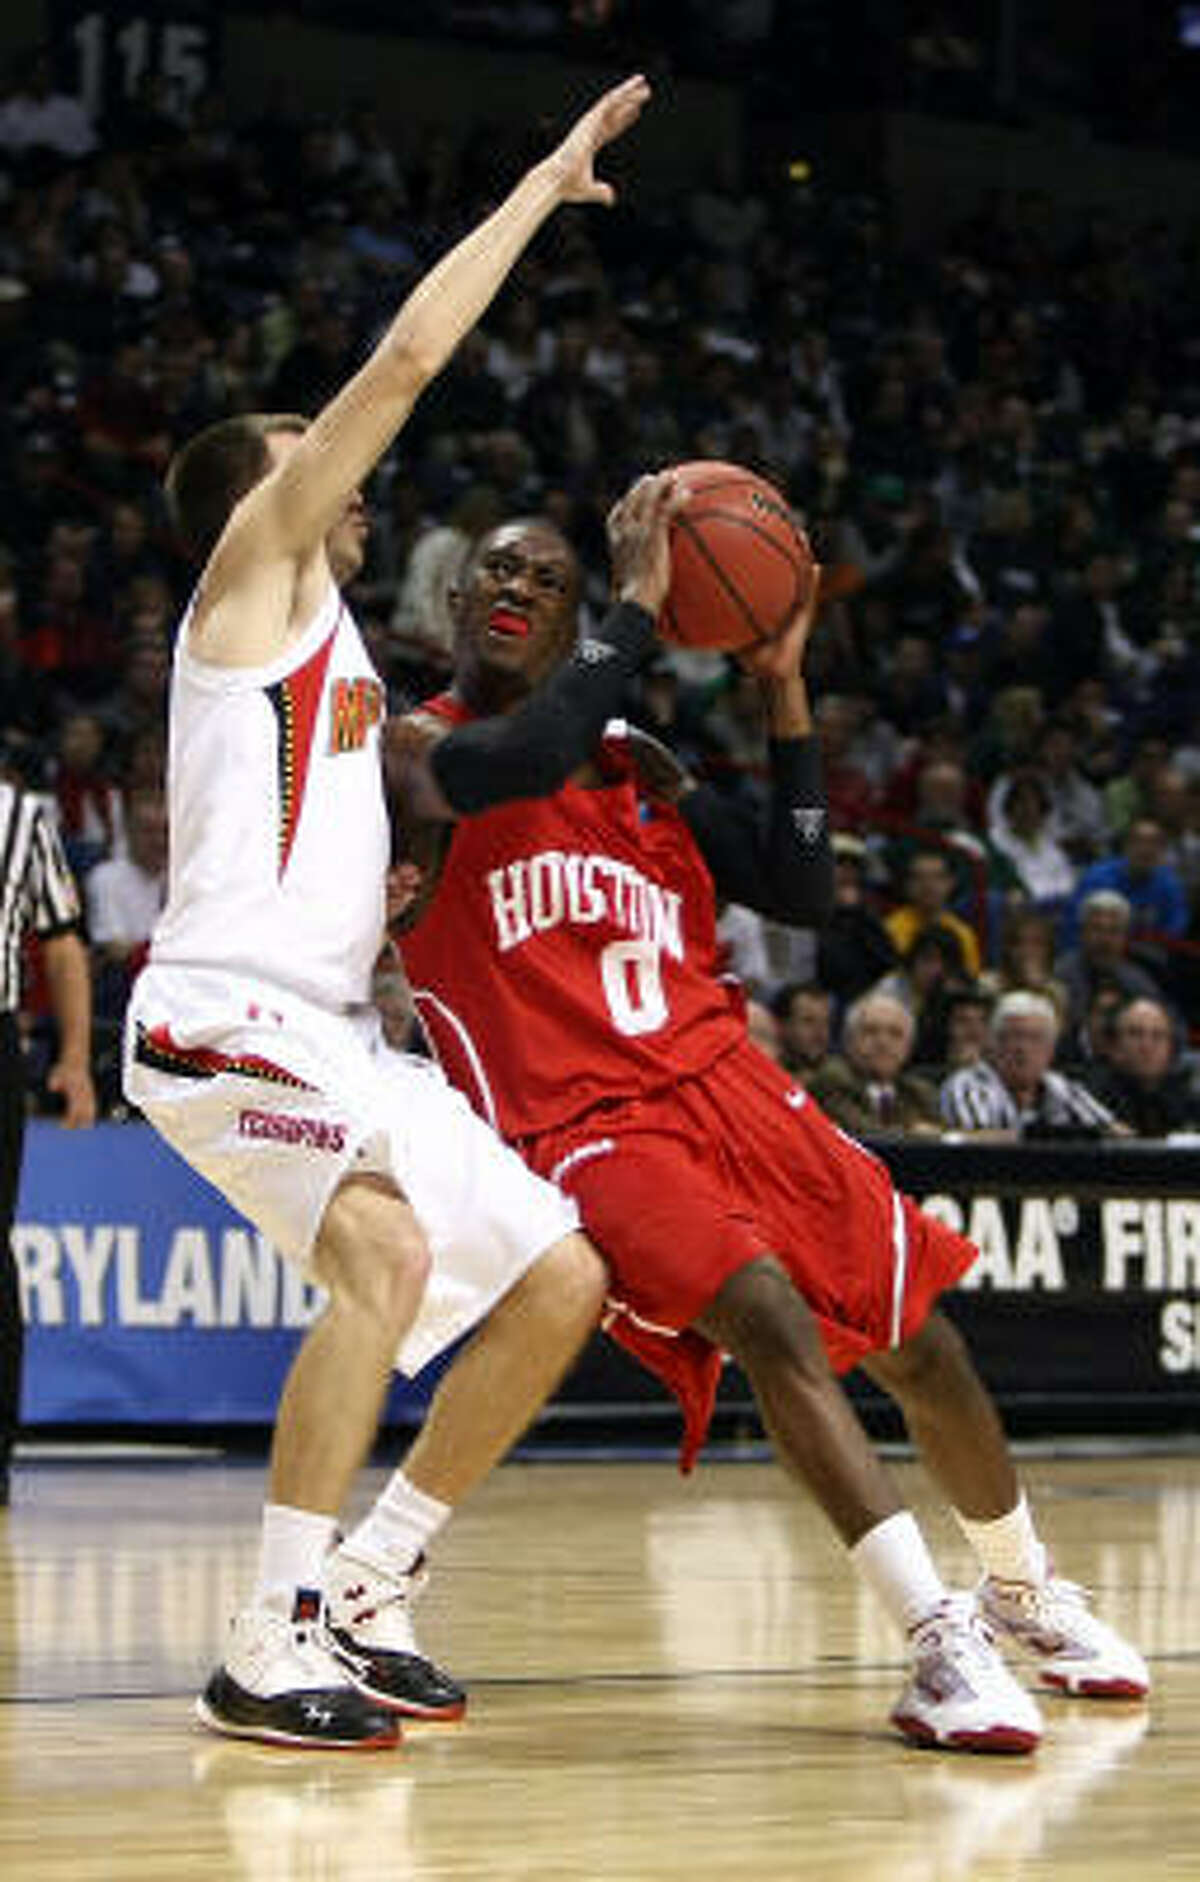 UH guard Kelvin Lewis, right, scored 24 points on 7-of-14 shooting.